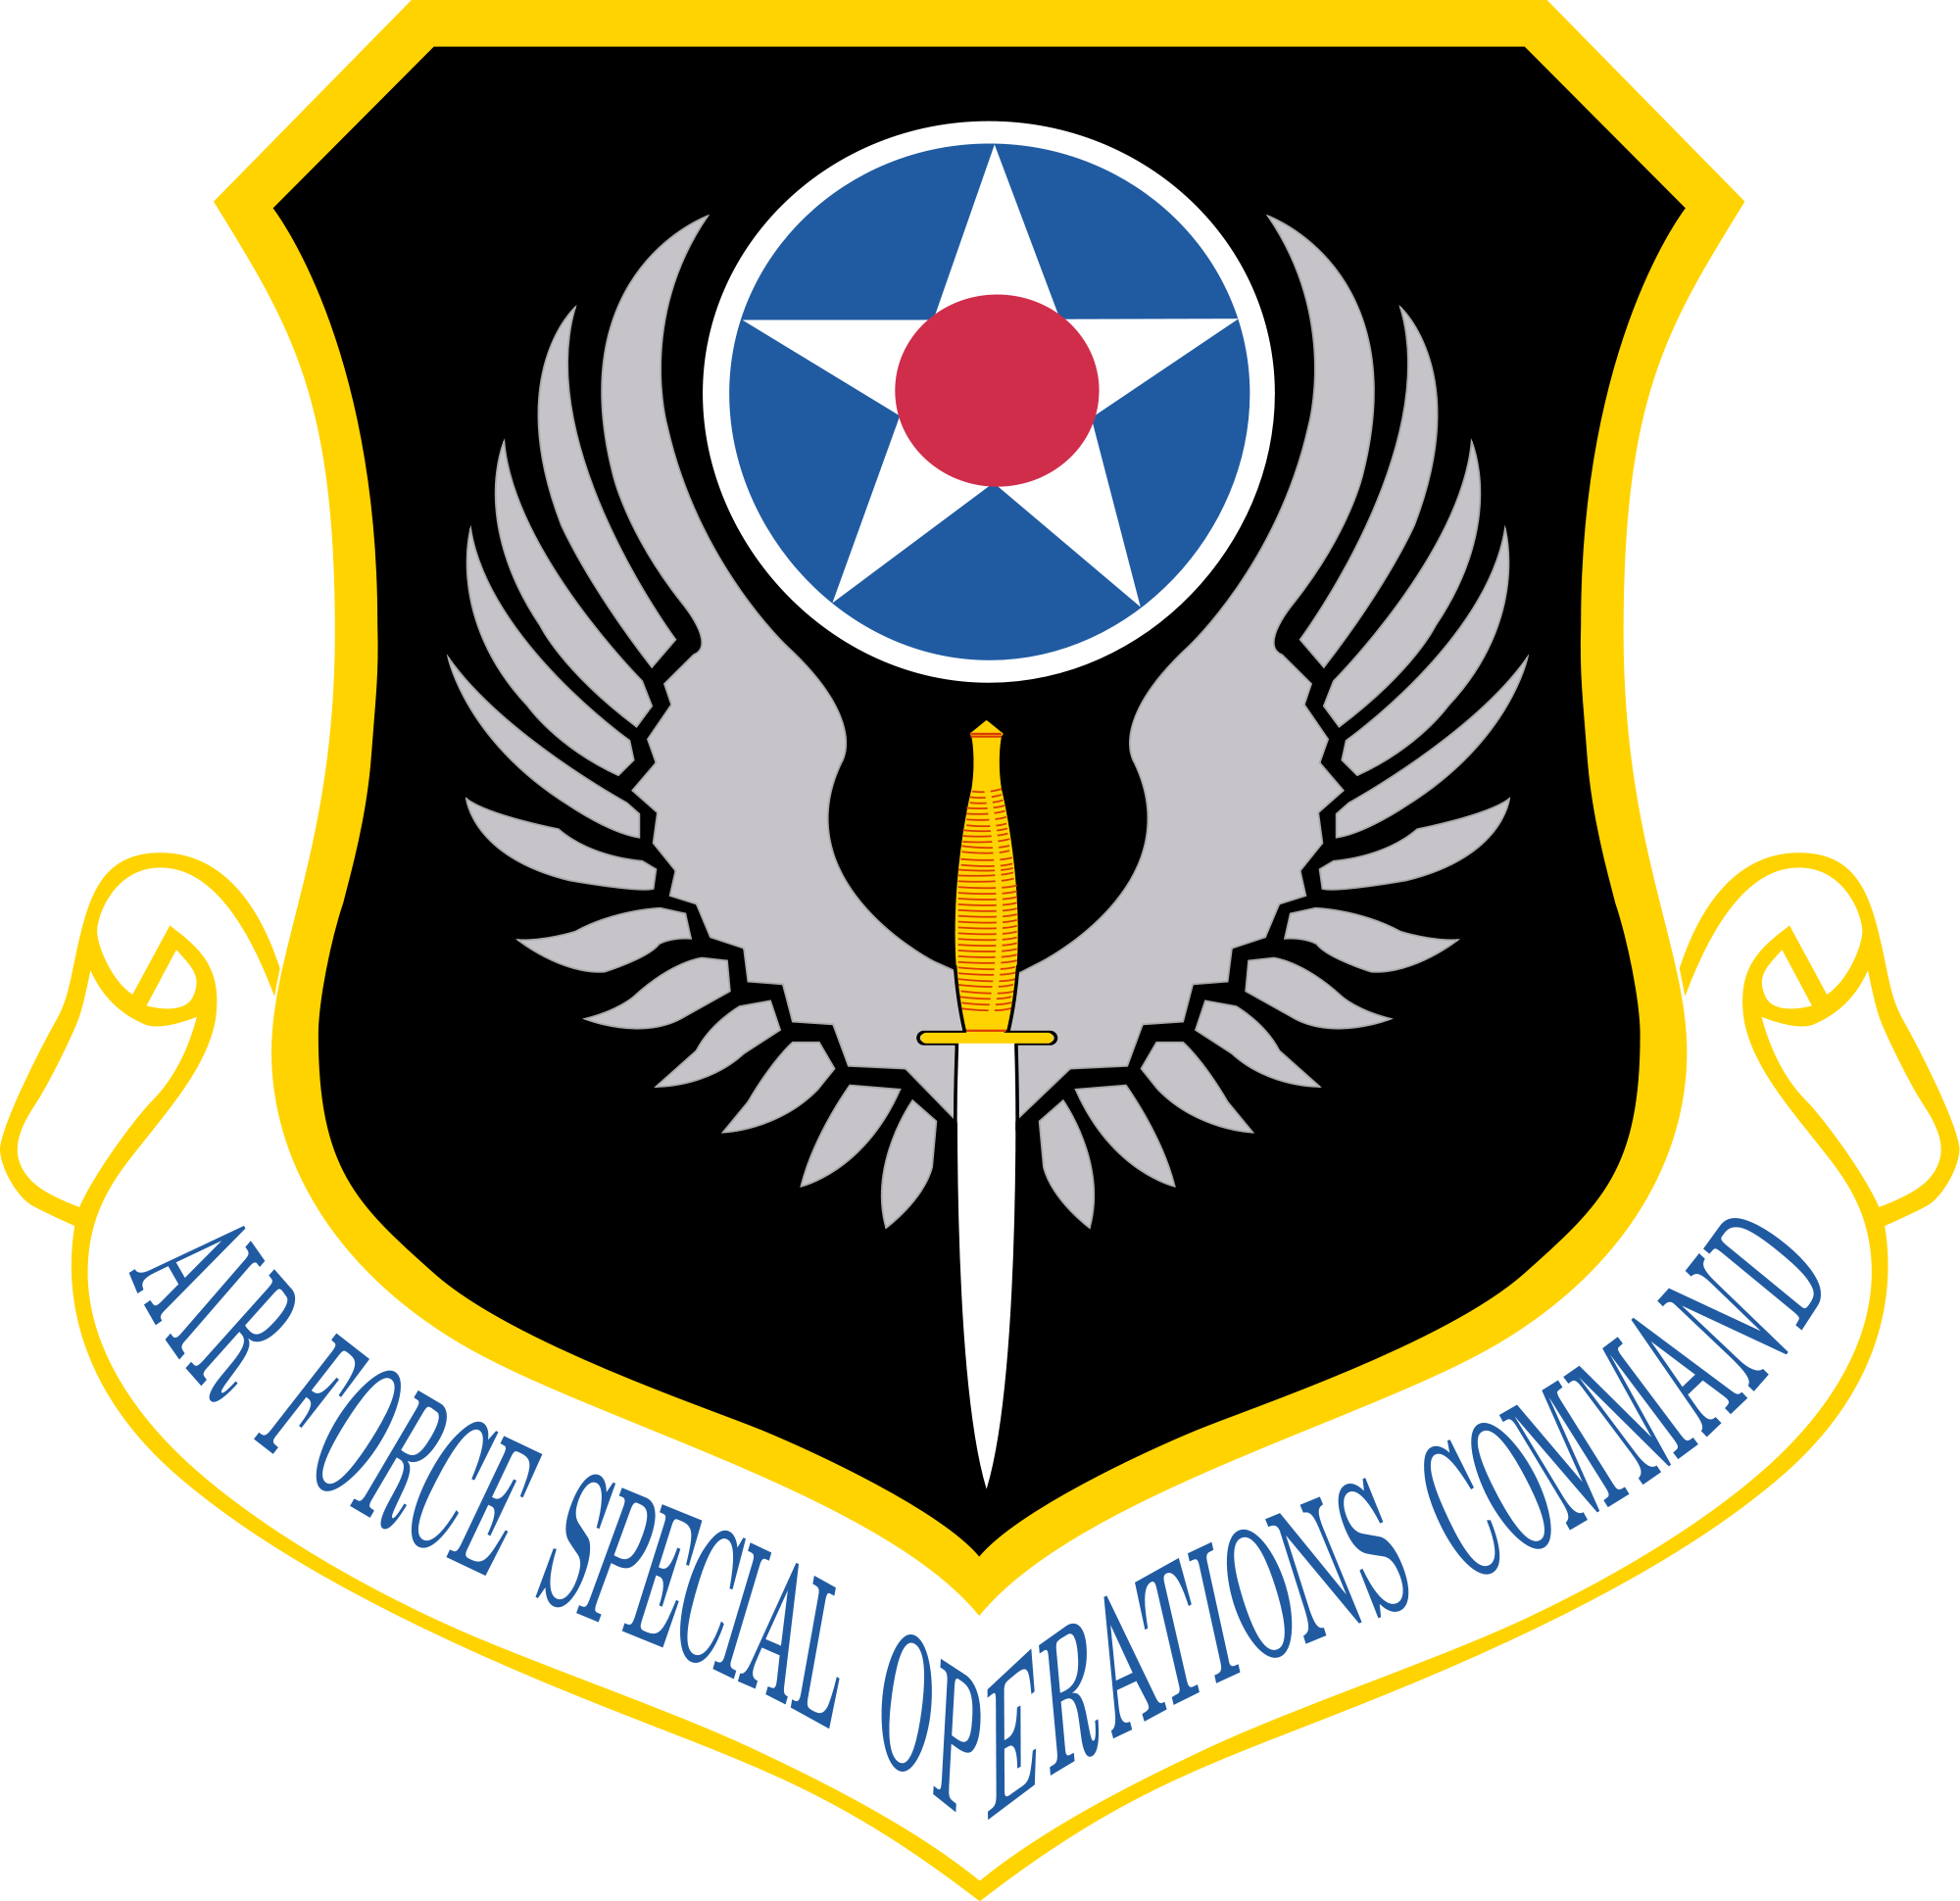 Air force captain png. Special operations command wikipedia